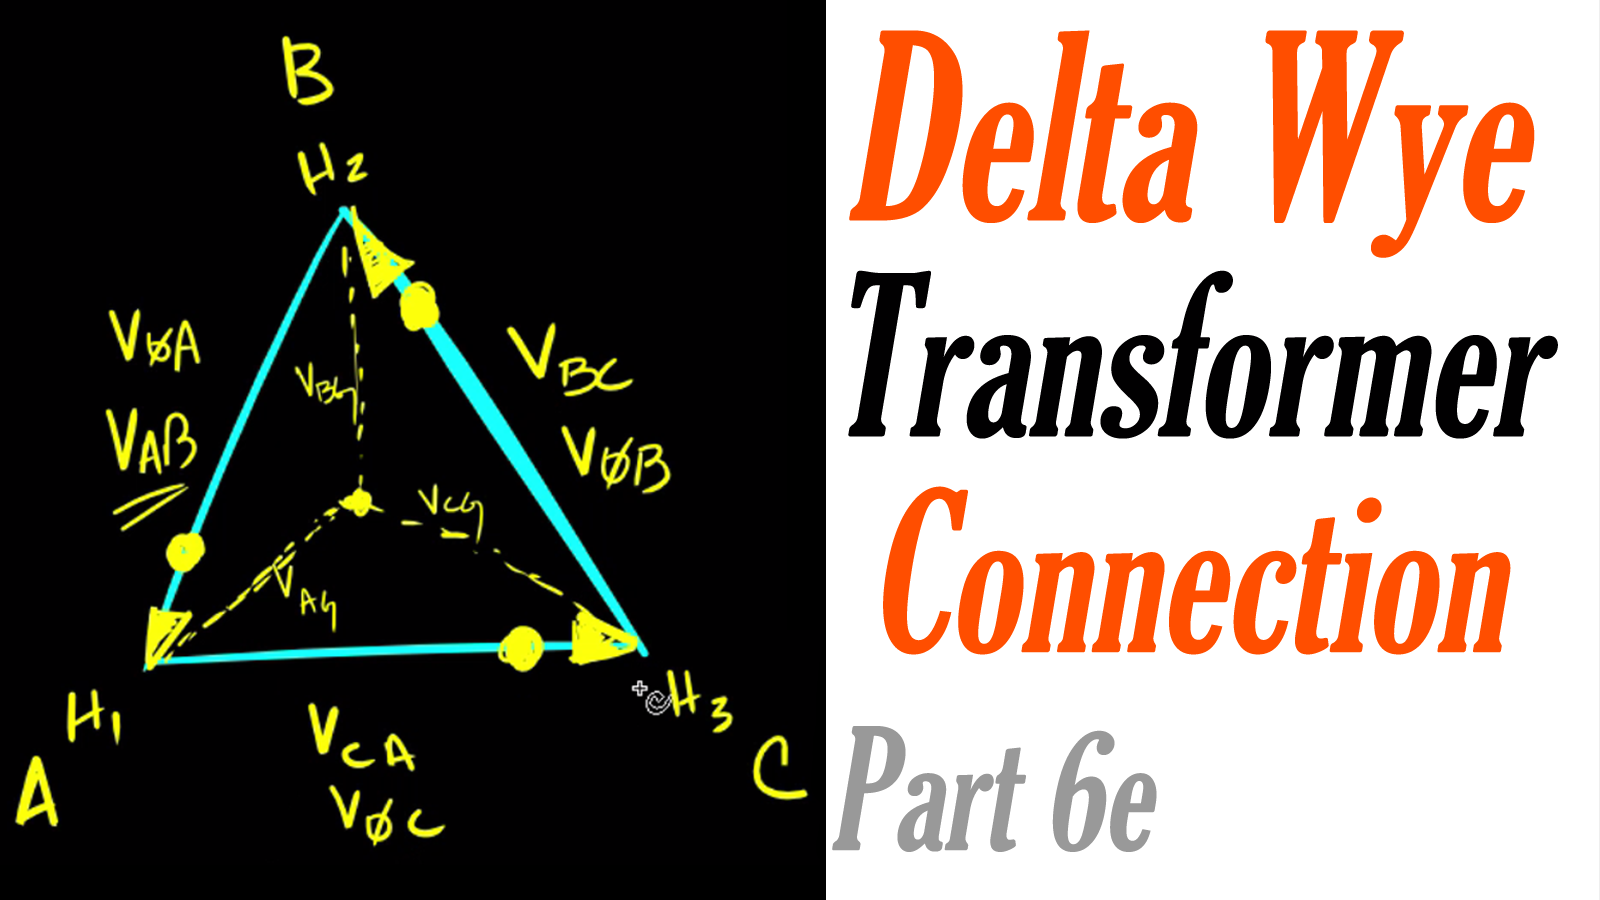 Introduction To The Delta Wye Transformer Part 6e Transformers Ga Power Wiring Diagram